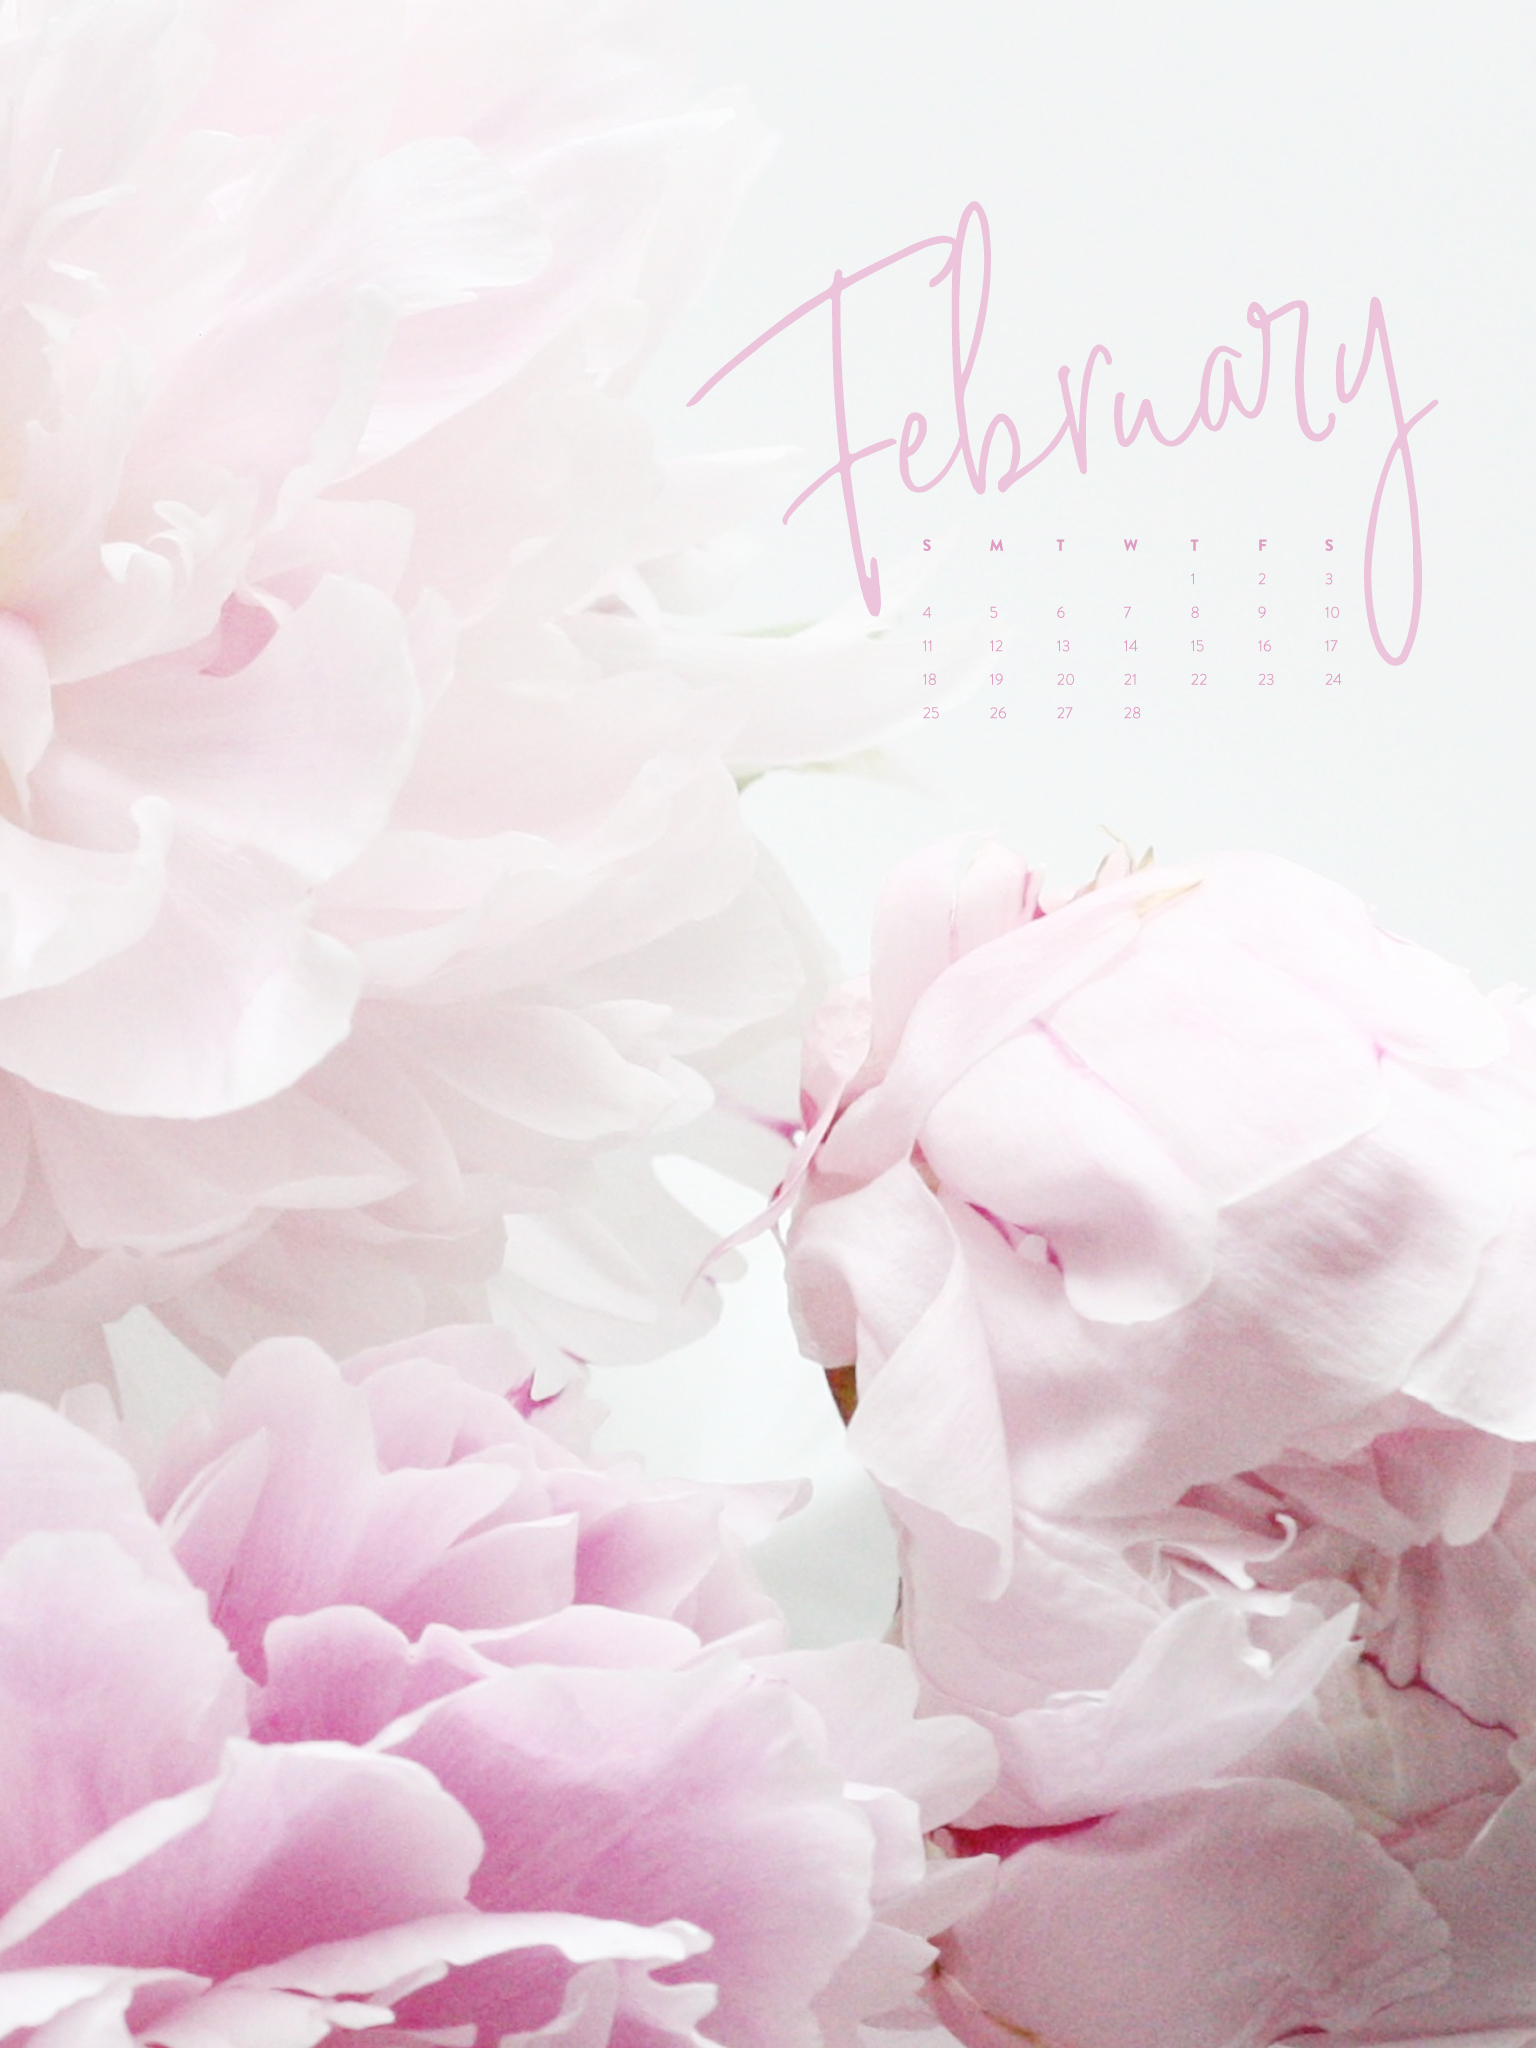 Pretty Wallpapers - Calendar For Background Feb 2019 , HD Wallpaper & Backgrounds